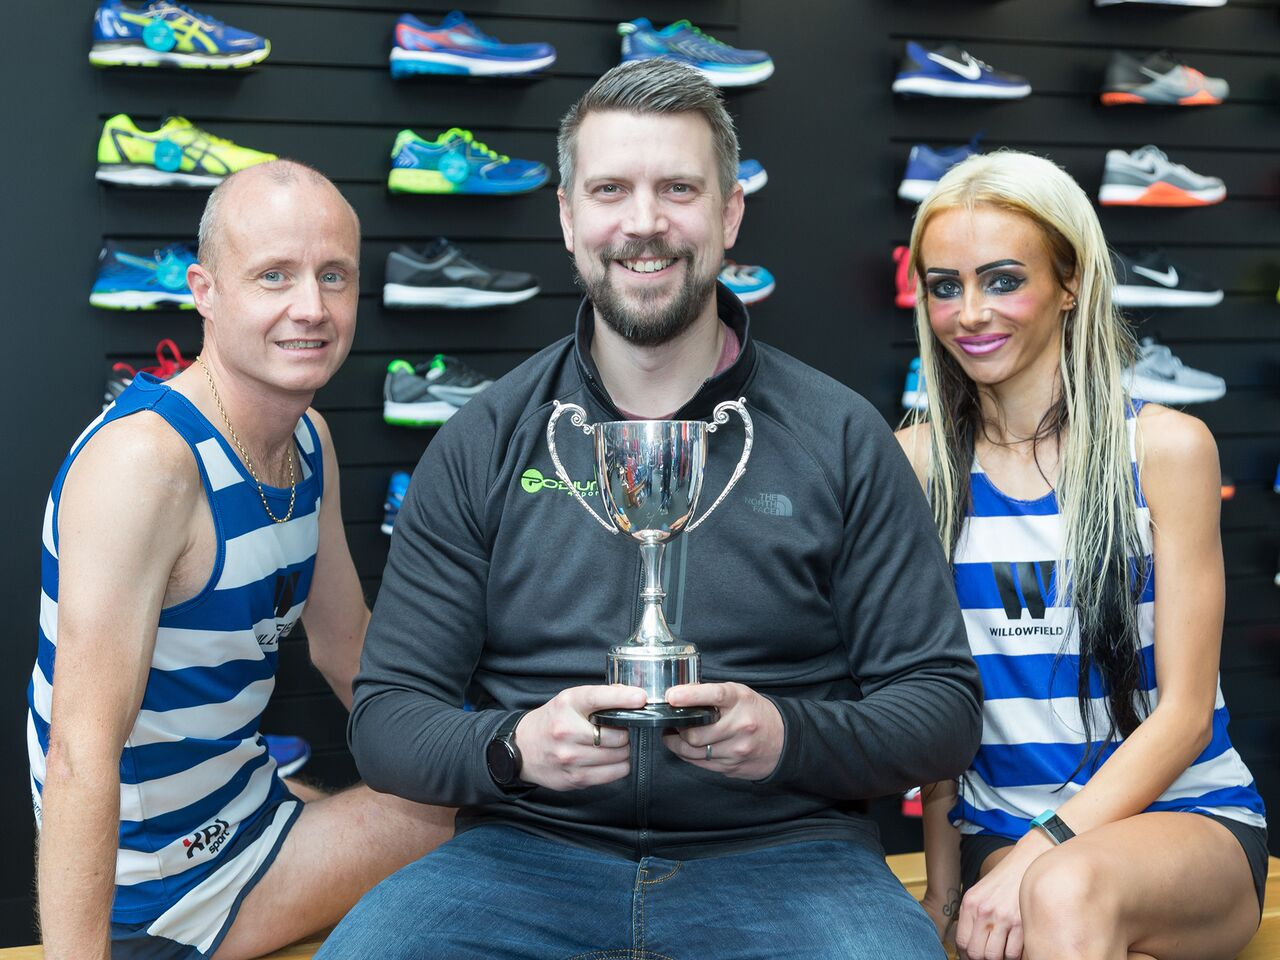 Willowfield Athletes Amy Bulman and Thomas Carson Launch the 36th Podium 4 Sport Seeley Cup 10K